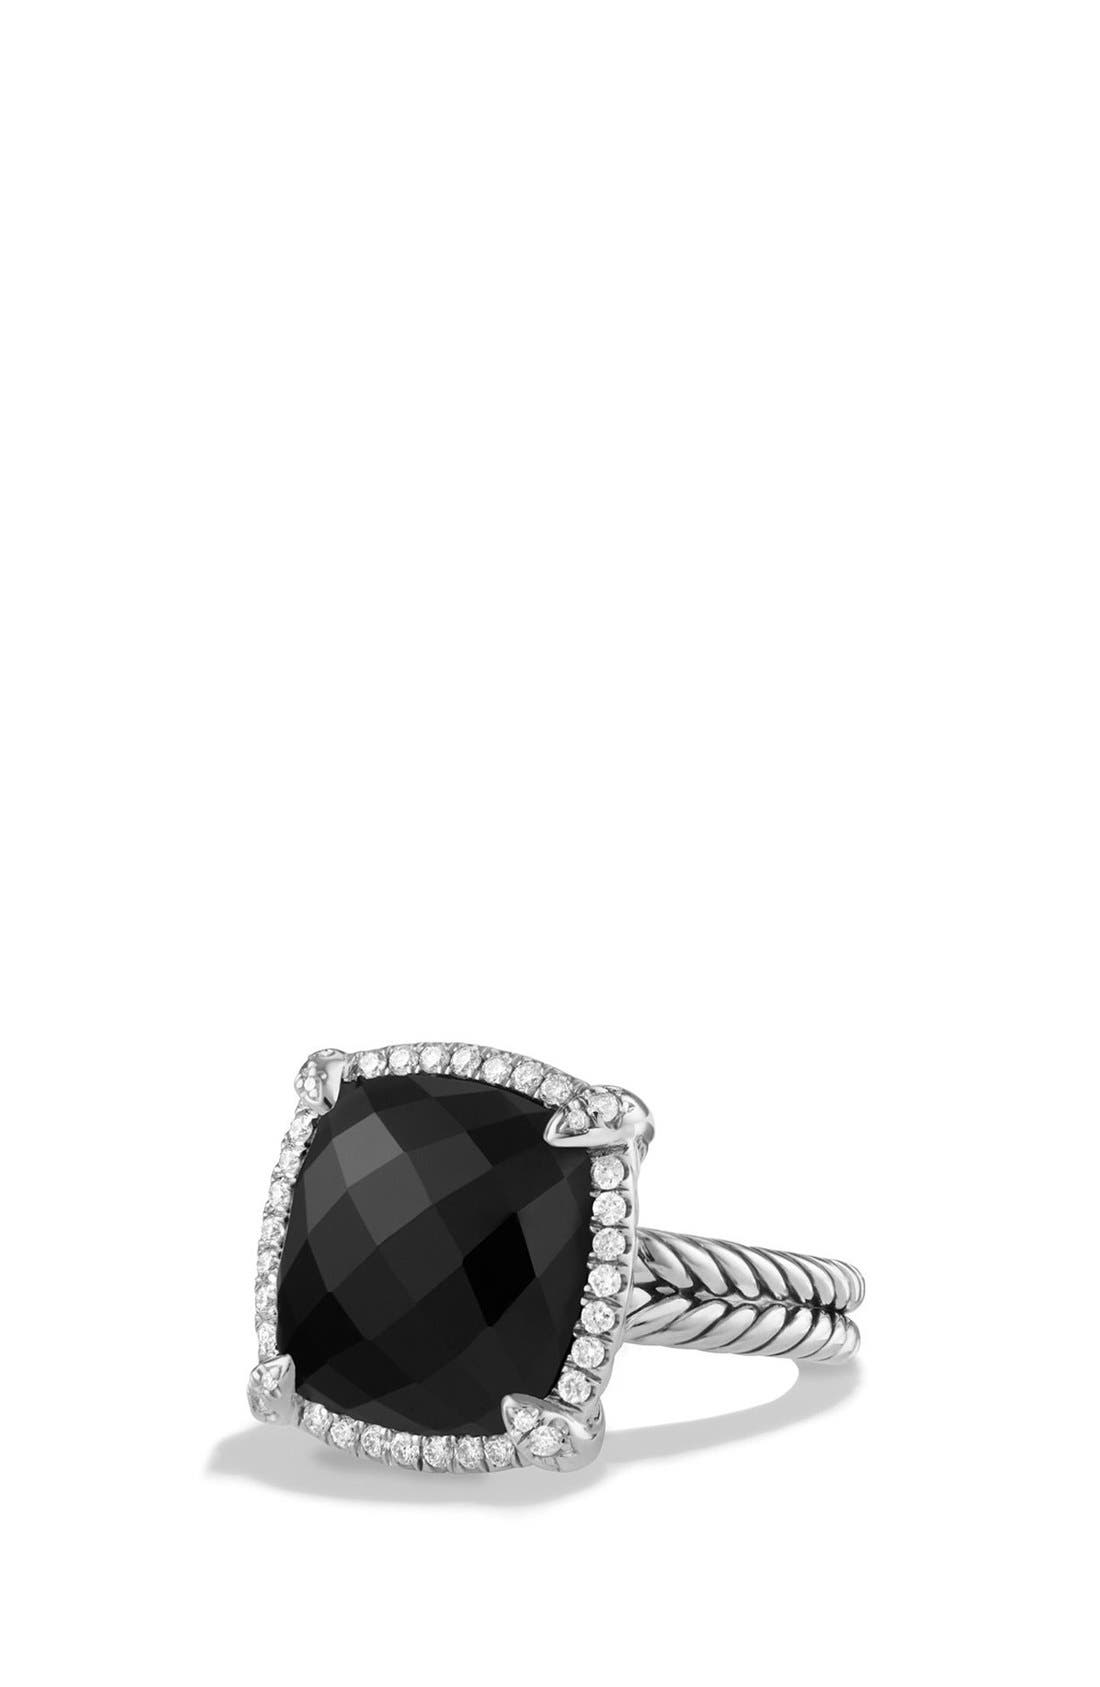 David Yurman 'Châtelaine' Large Pavé Bezel Ring with Diamonds